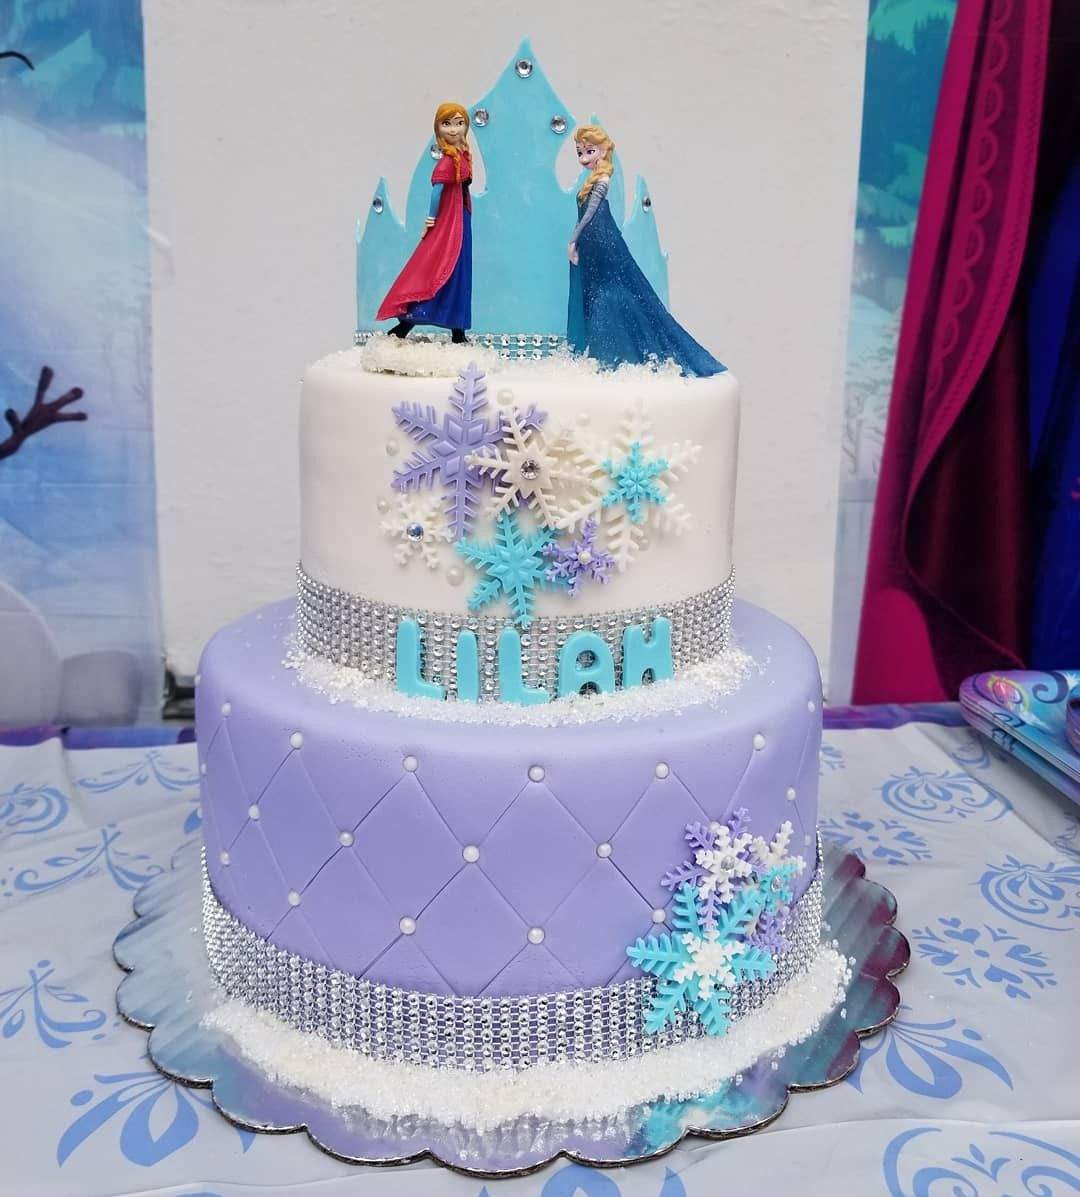 2 Tier Frozen Cake With Elsa And Anna Cake Toppers With Images